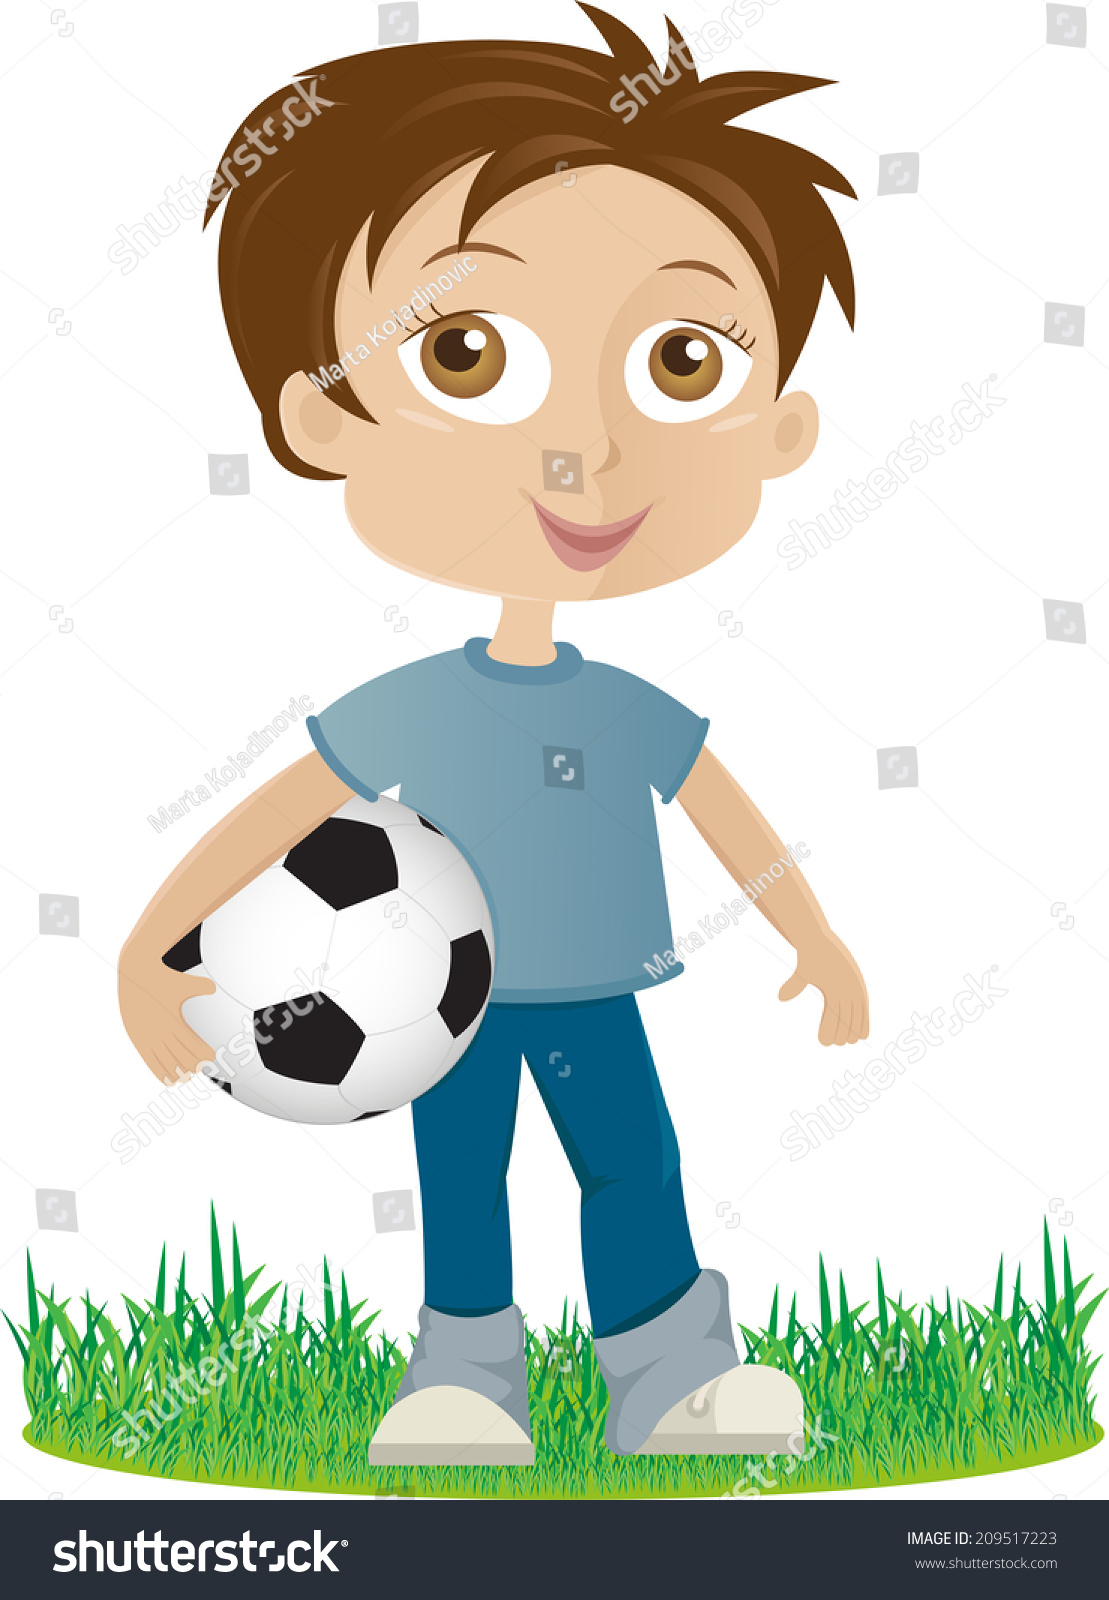 Boy holding a ball clipart 7 » Clipart Station.